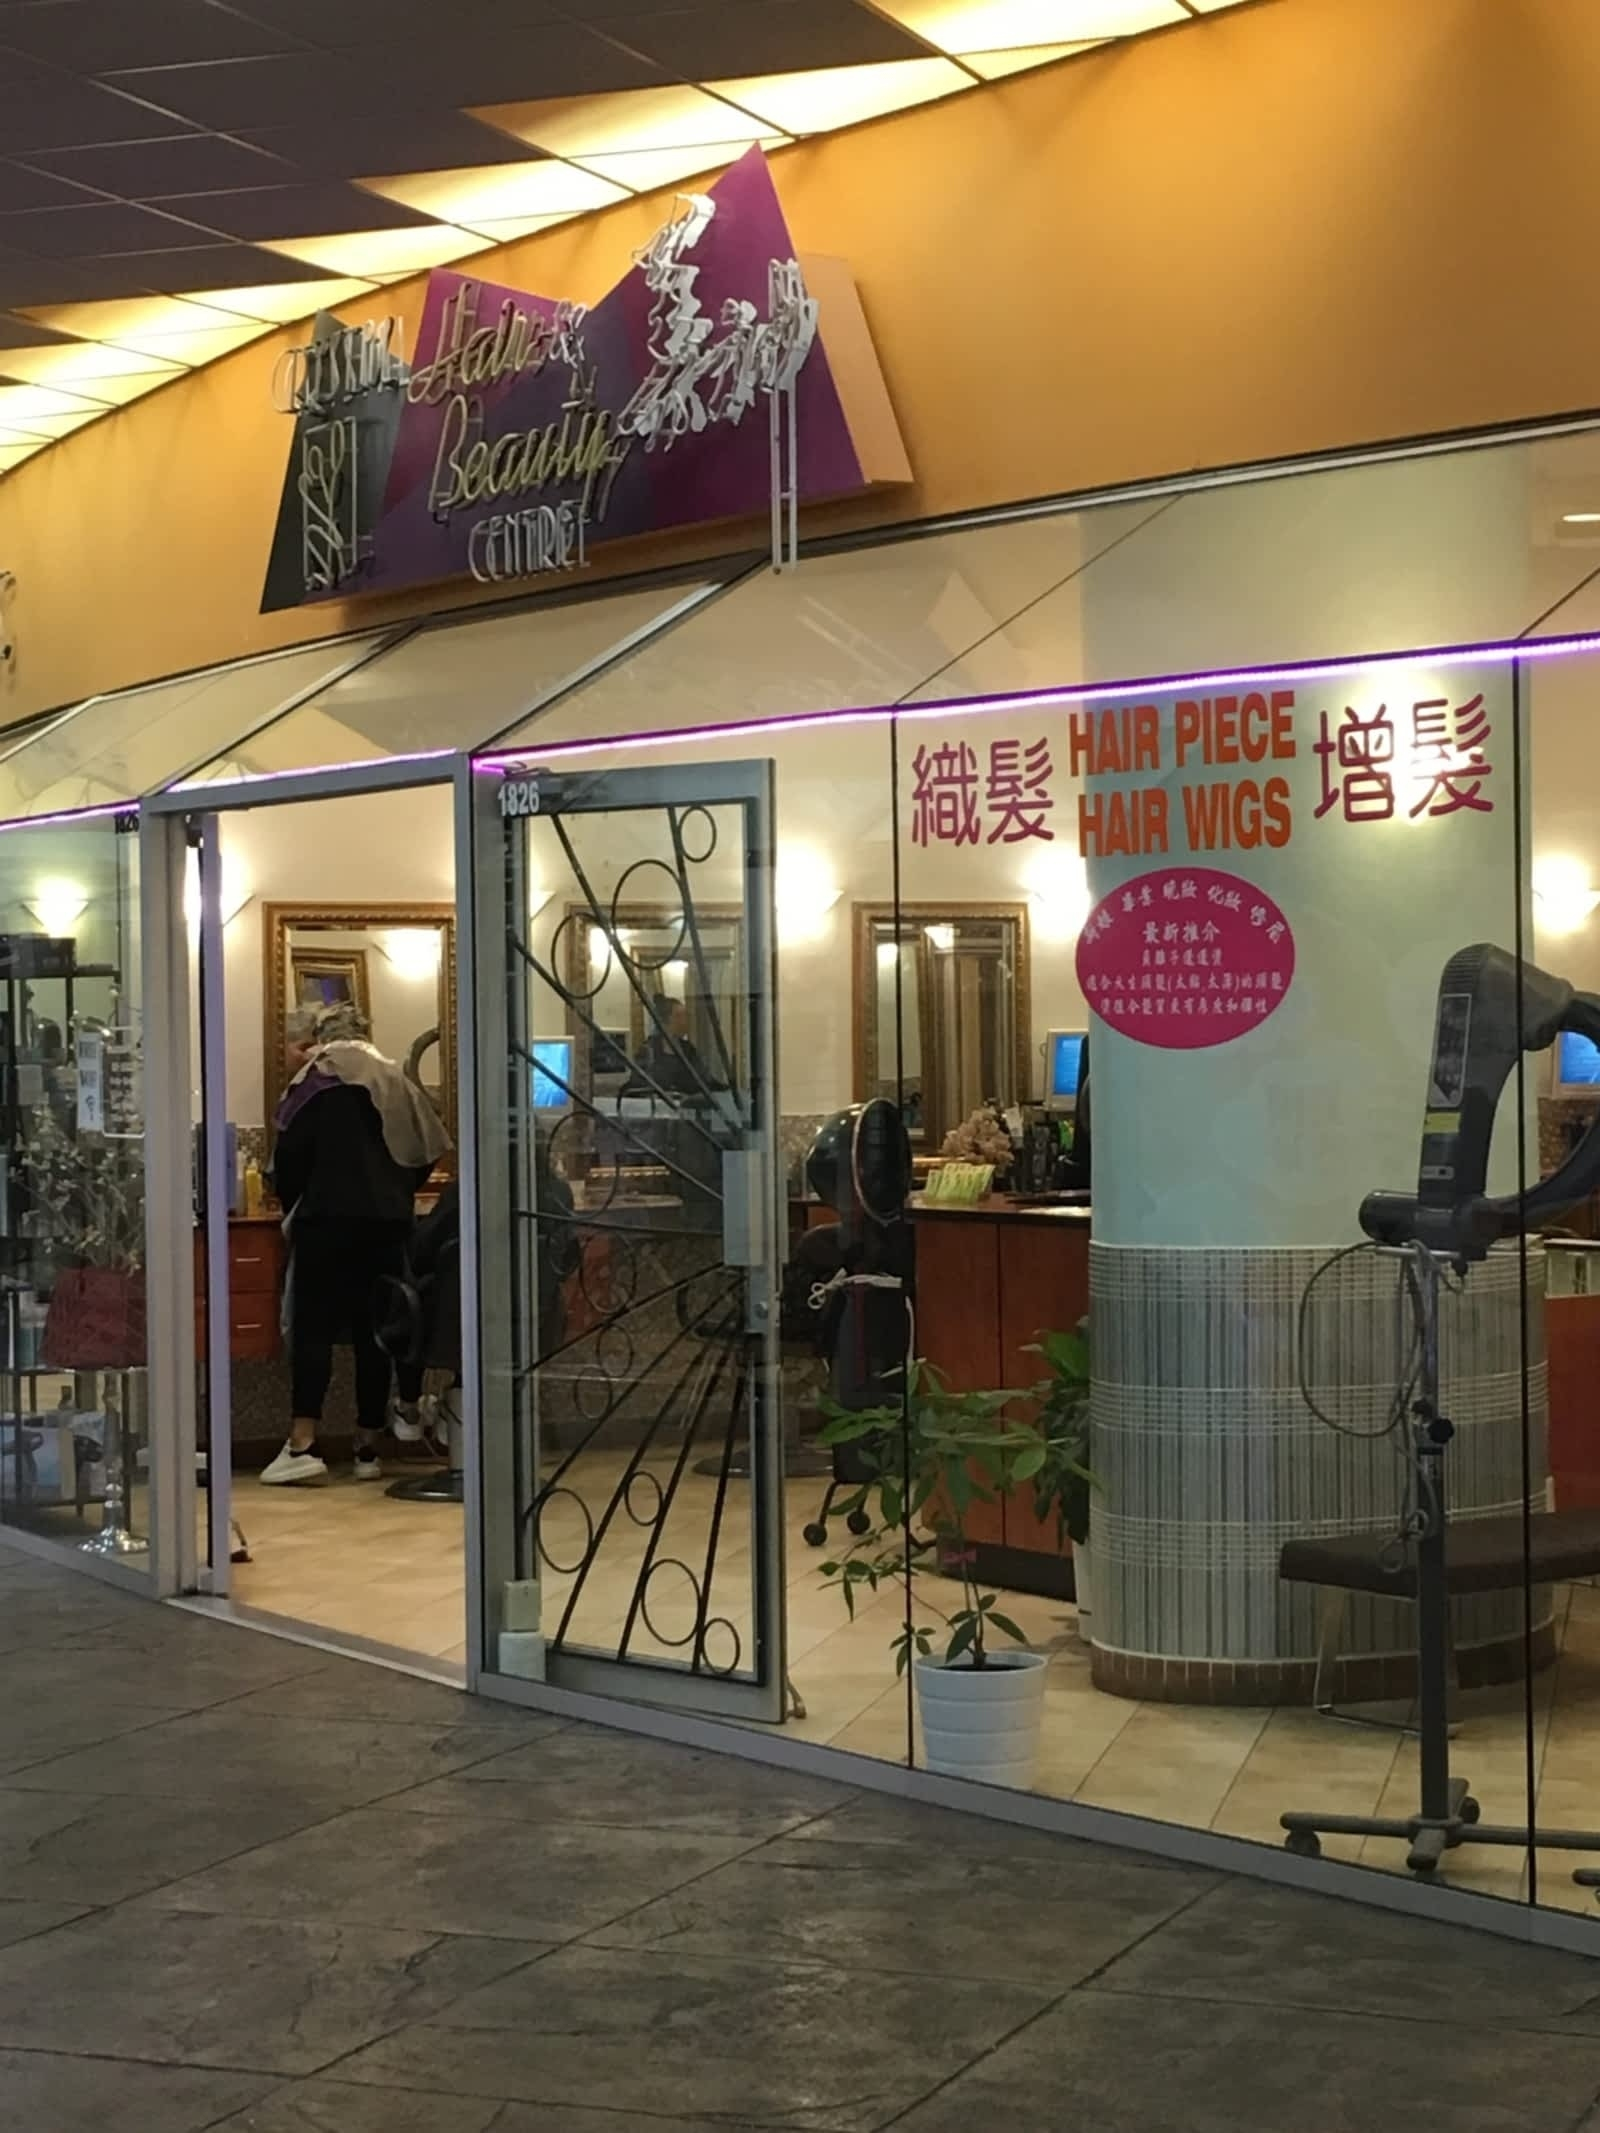 Eva's Hair & Beauty Salon - Opening Hours - 1826-4500 Kingsway for Haircut Salon At The Mall